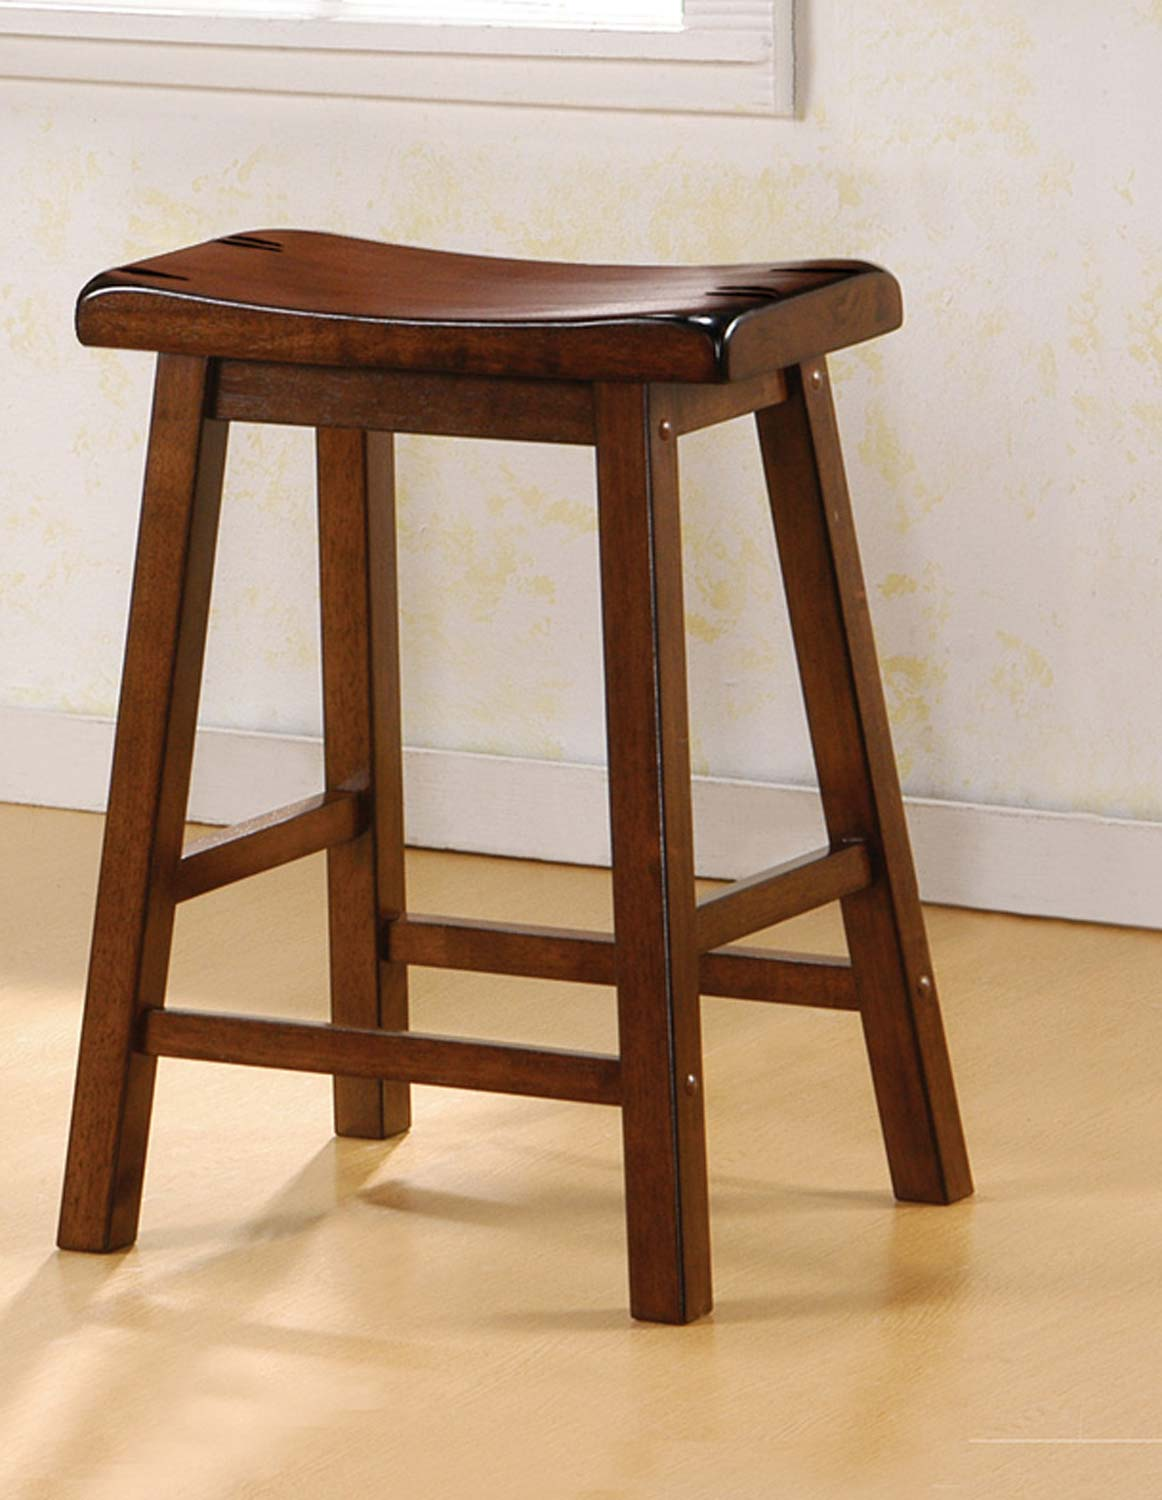 Coaster 180069 Counter Stool - Dark Walnut